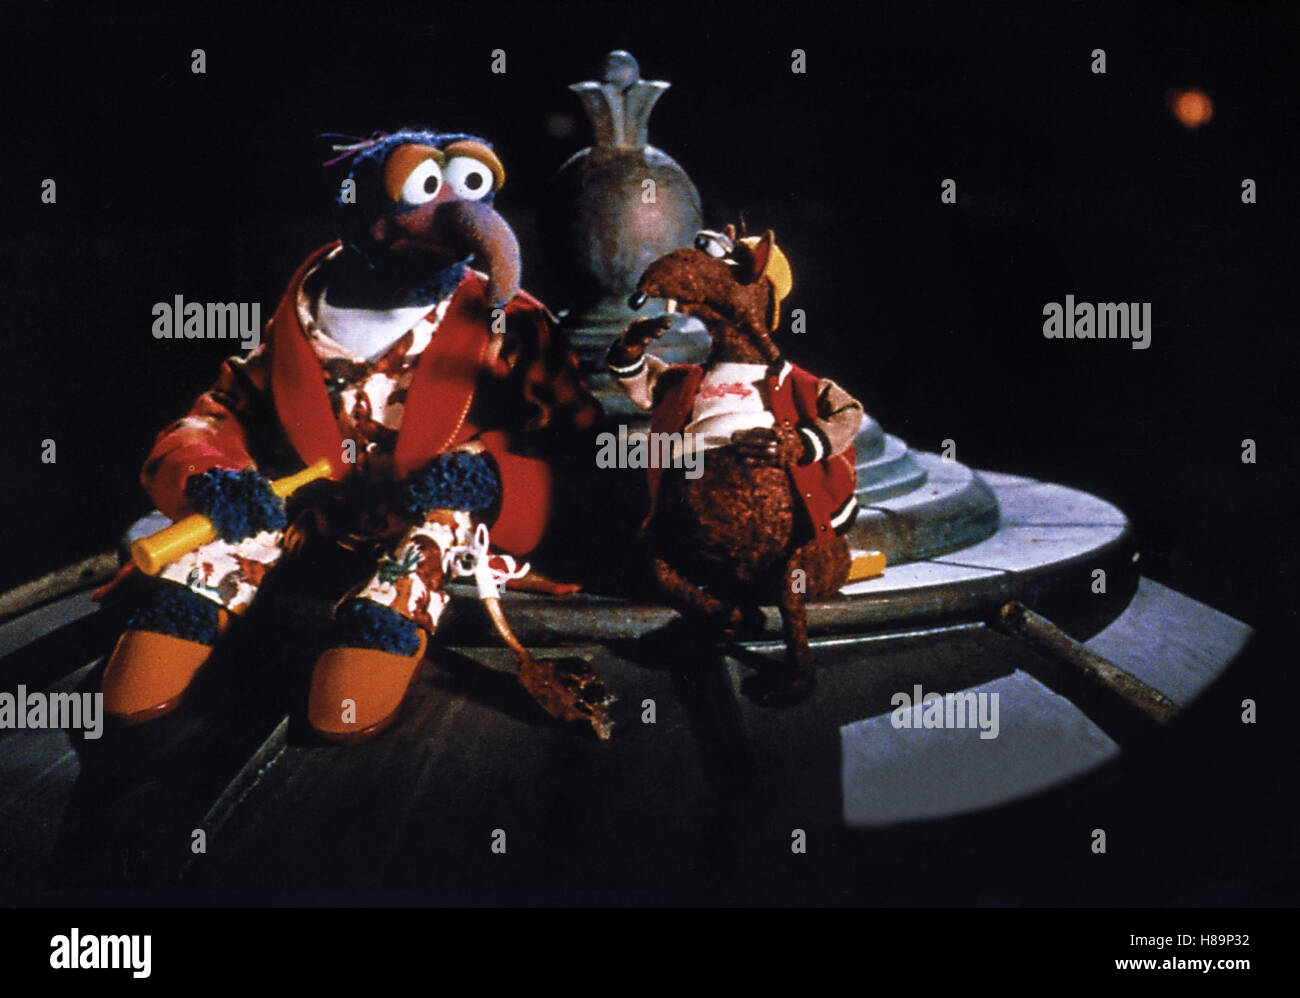 Muppets aus dem All, (MUPPETS FROM SPACE) USA 1999, Regie: Tim Hill - Stock Image